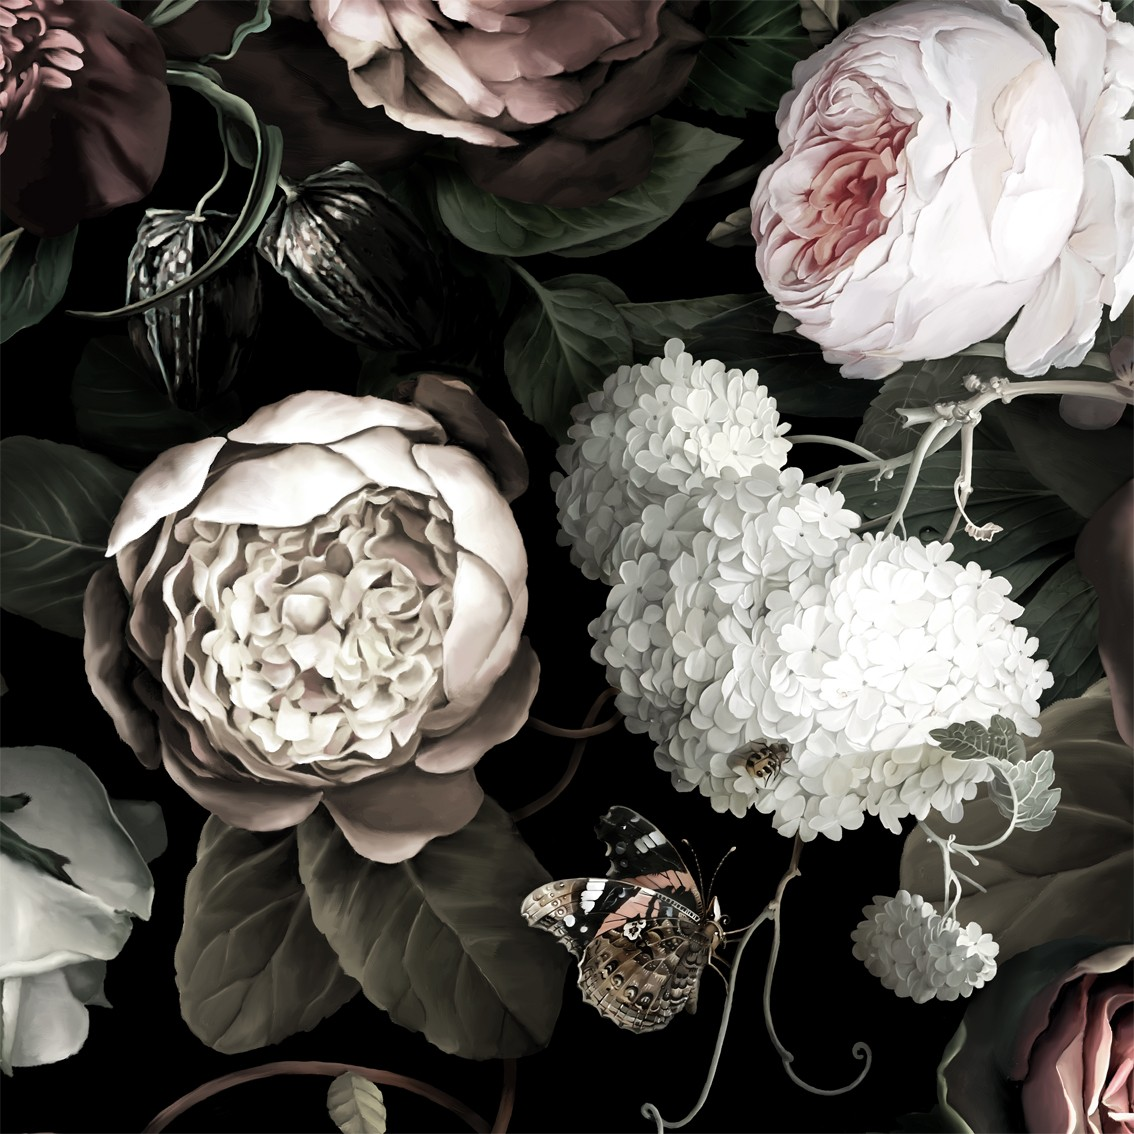 49 Ellie Cashman Dark Floral Wallpaper On Wallpapersafari